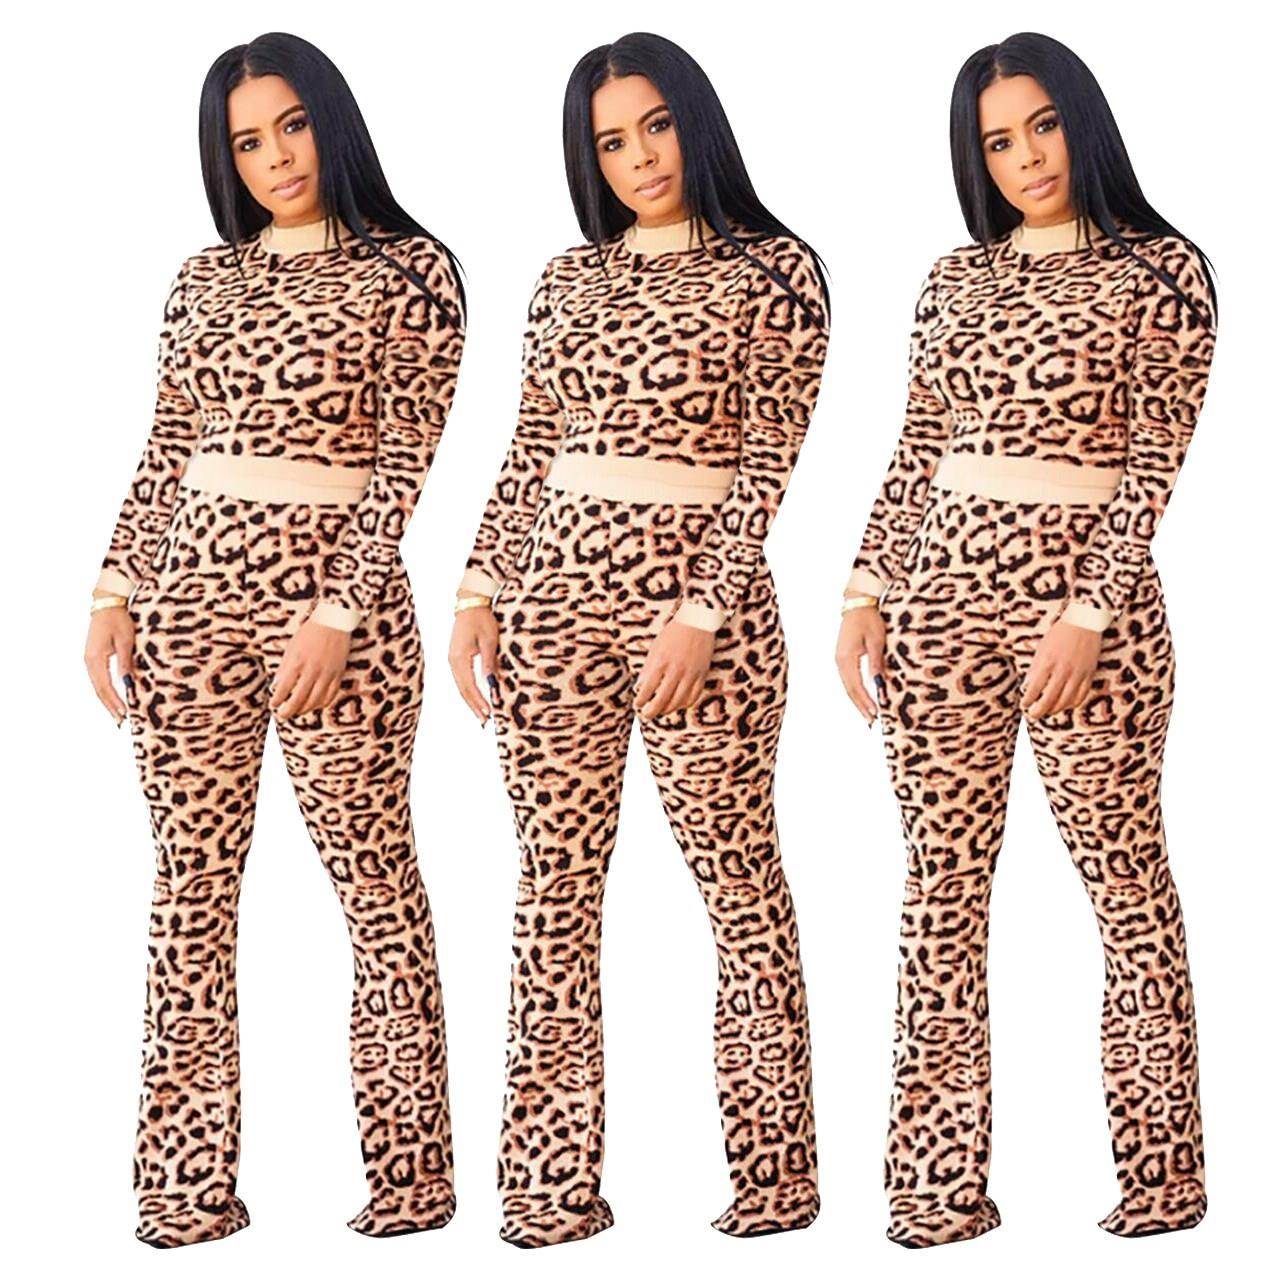 Leopard Fitness Fashion Matching Set Women Sexy Bodycon Long Sleeve Bodysuit And Pants 2 Piece Outfits